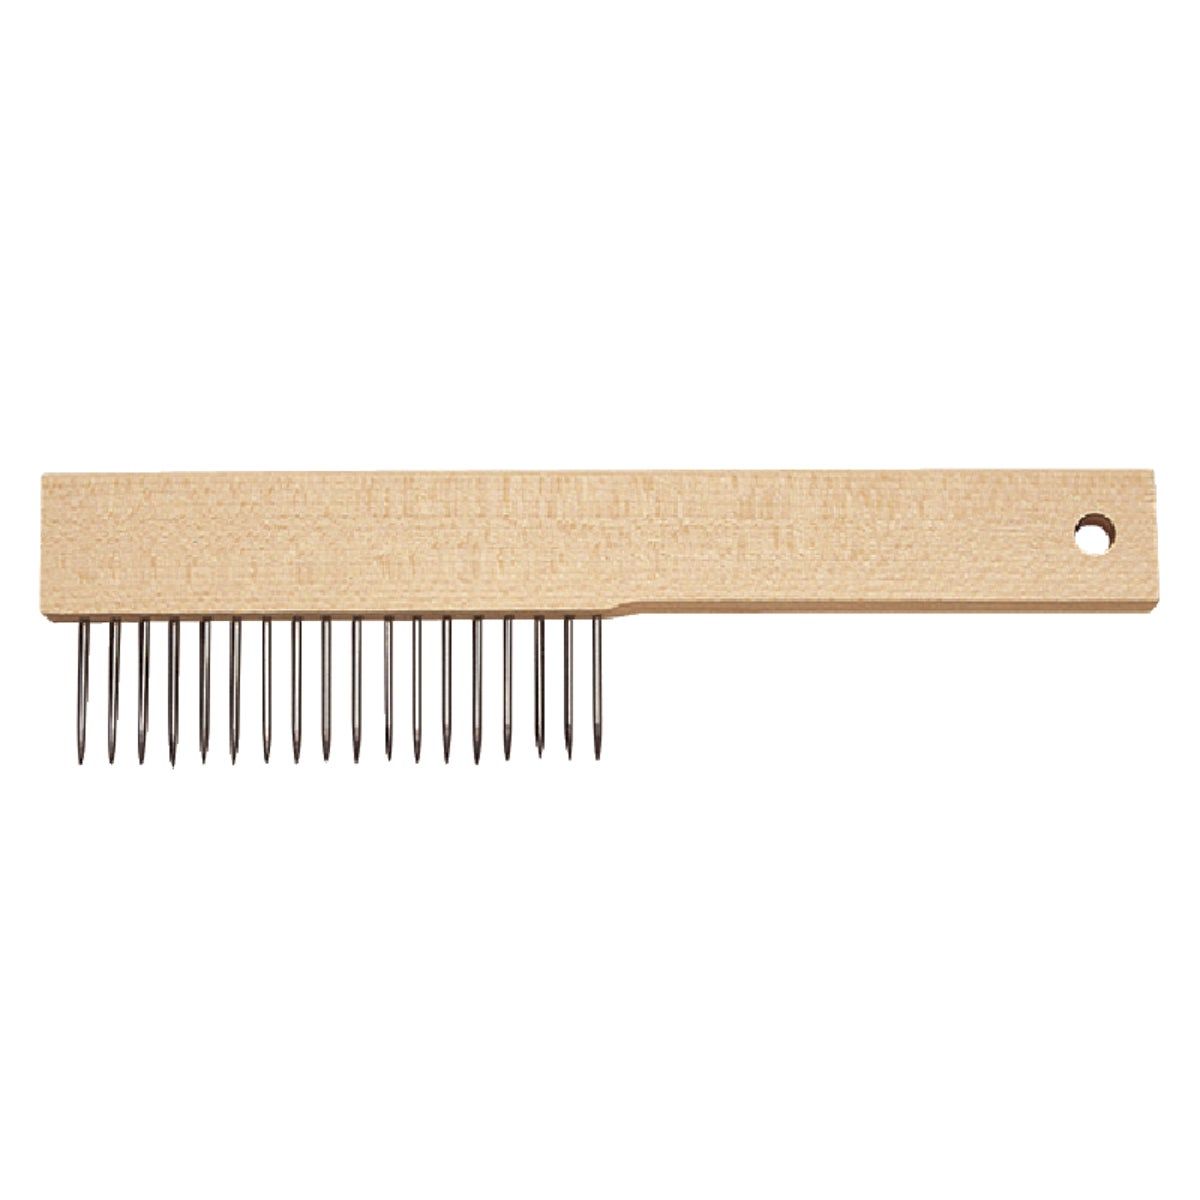 BRUSH COMB - 068010 by Purdy Bestt Liebco